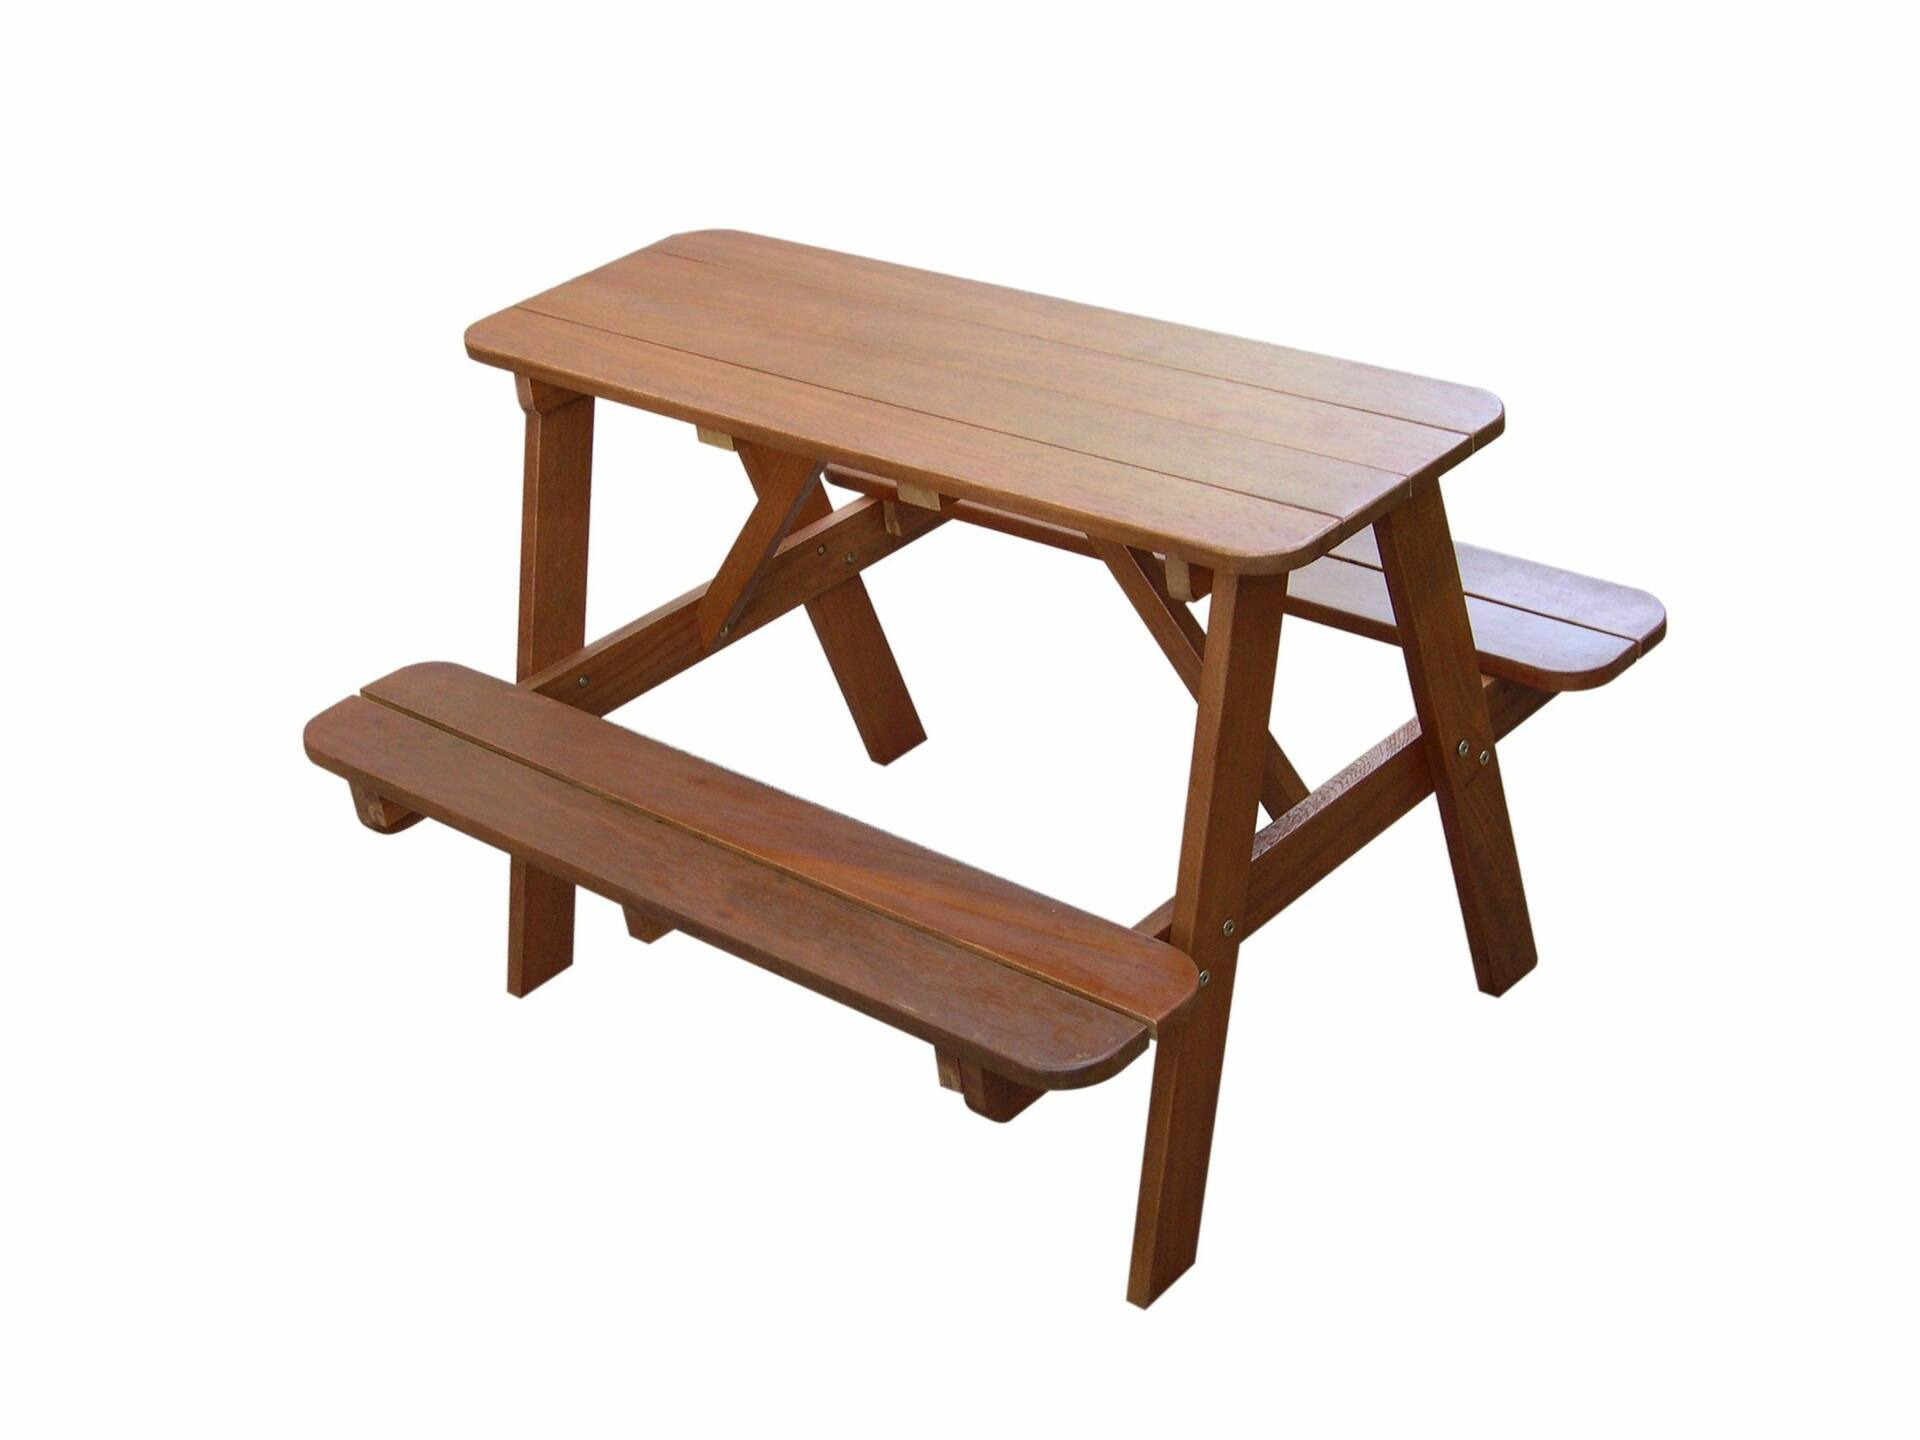 colored wood patio furniture. Wooden Patio Furniture For Kids/Item#:KIZ-PICNIC Colored Wood N